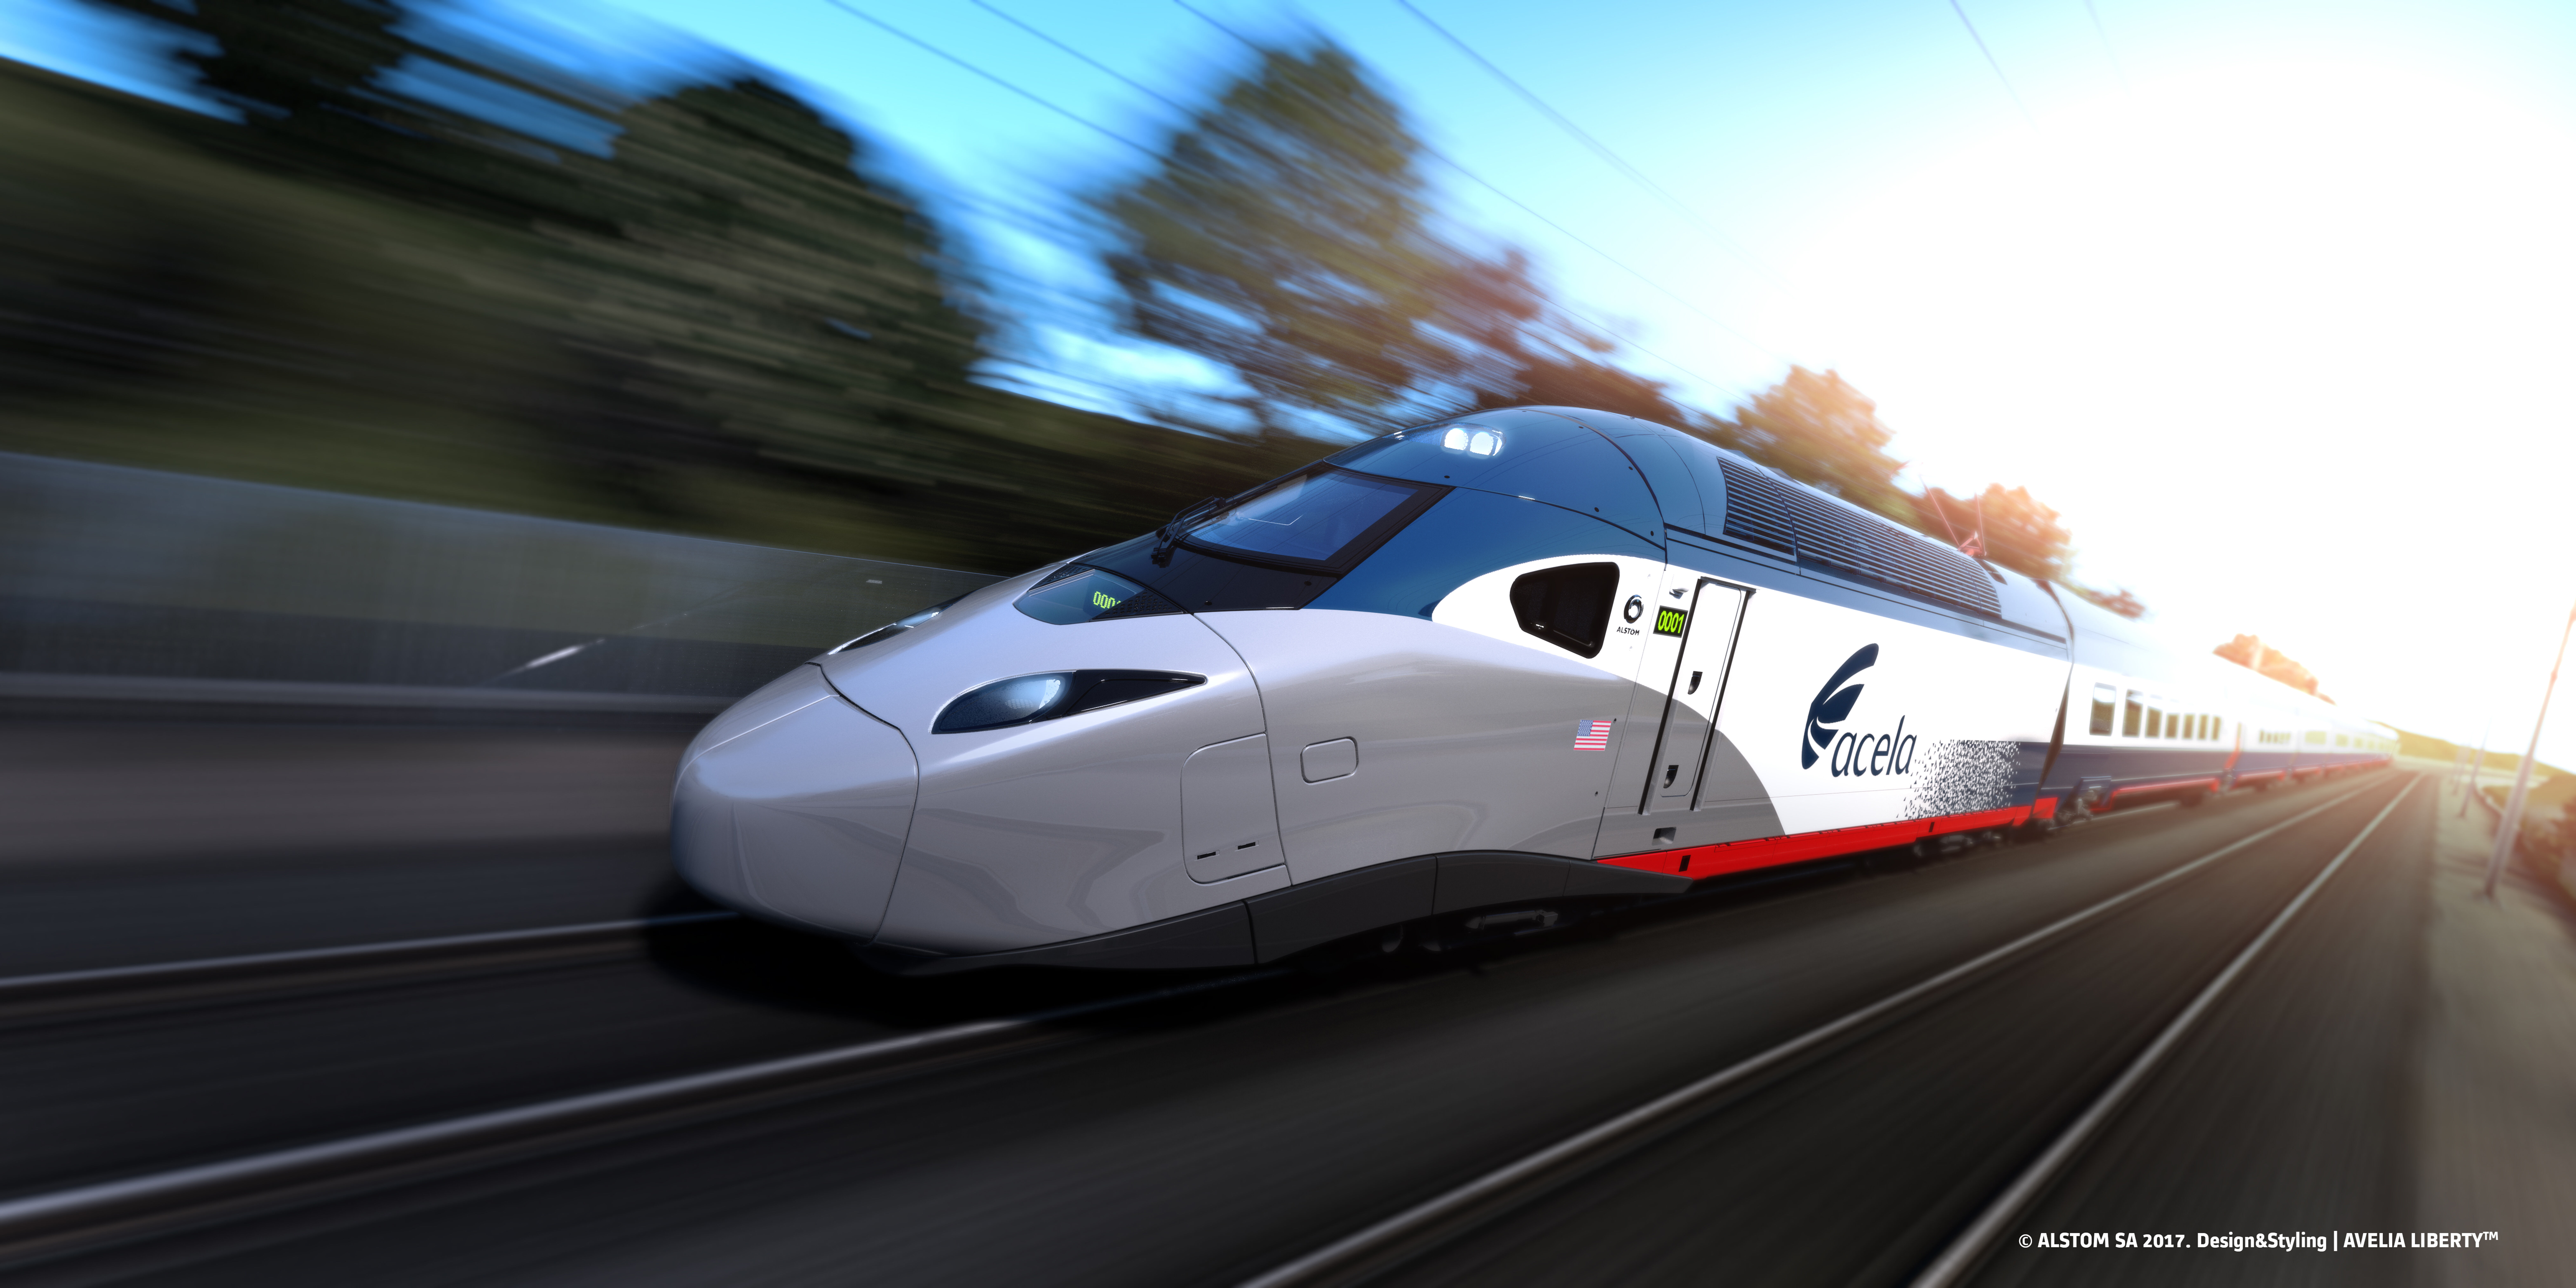 Amtrak audit: New Acela trains likely to be delayed